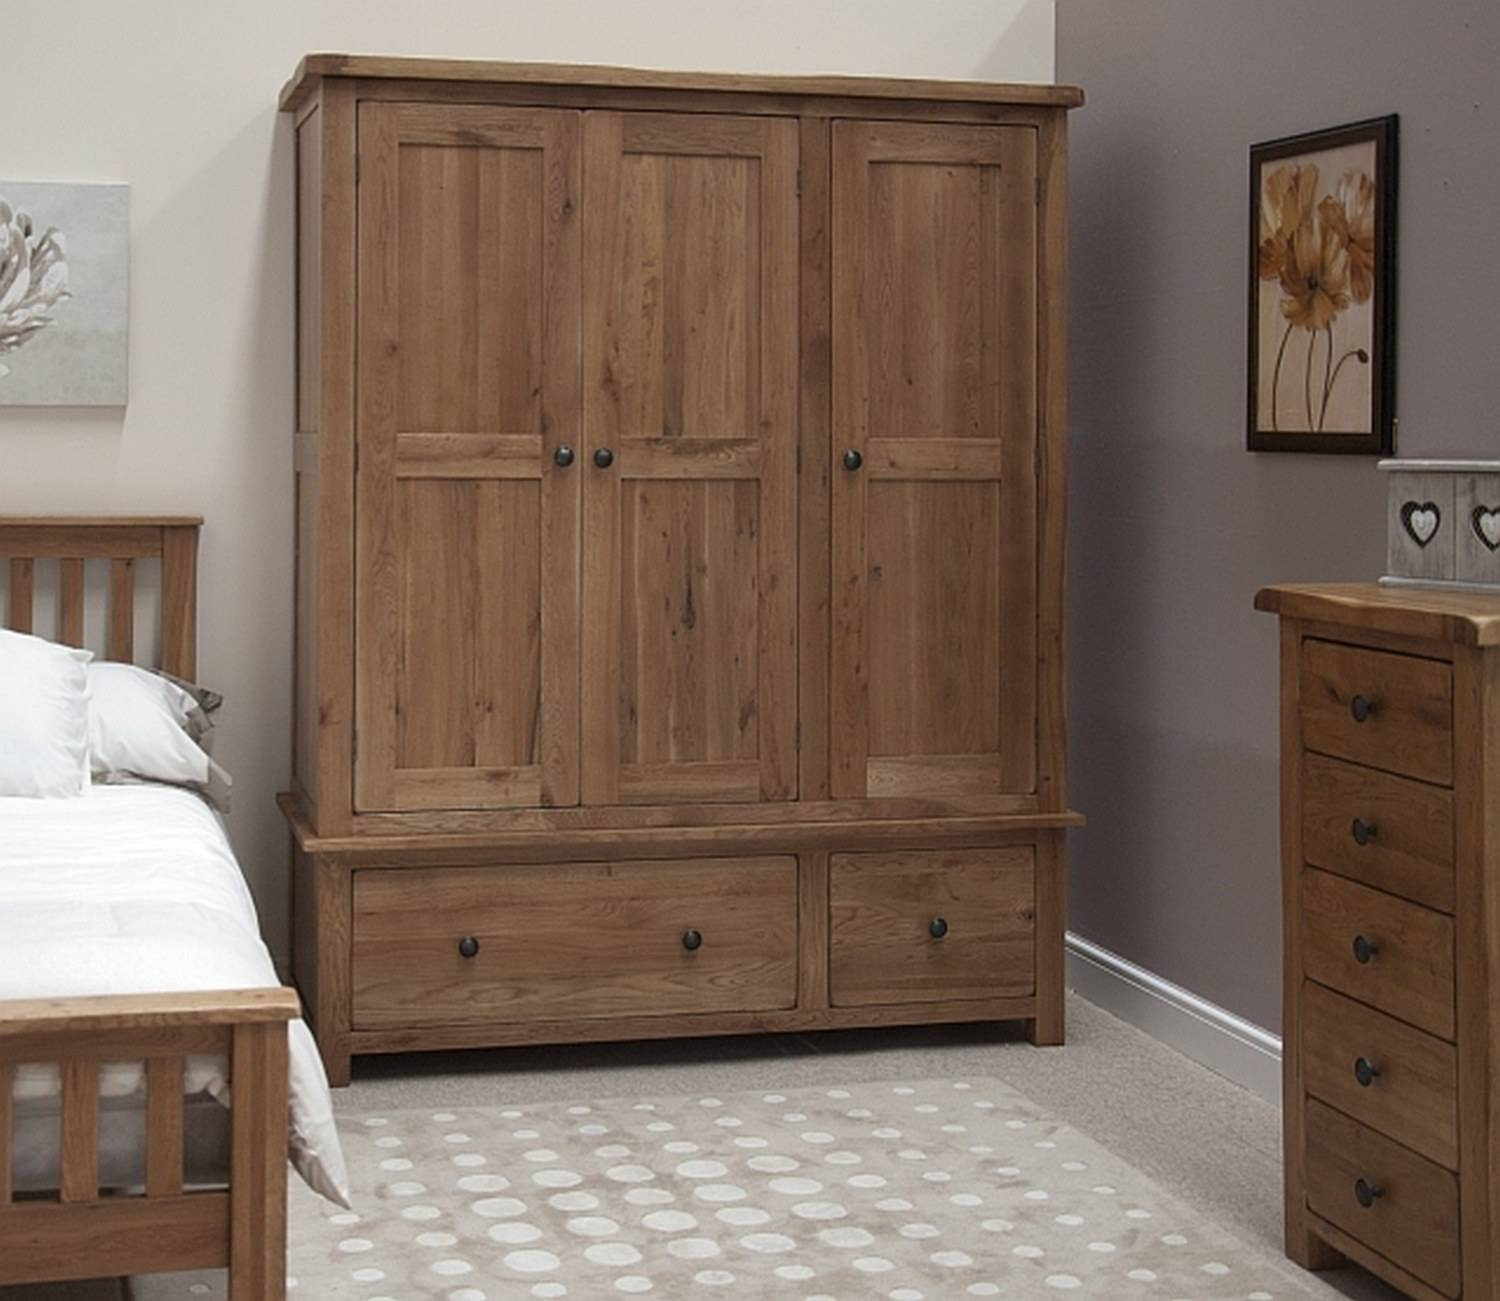 Tilson Solid Oak Bedroom Furniture Large Triple Wardrobe With inside Large Oak Wardrobes (Image 11 of 15)